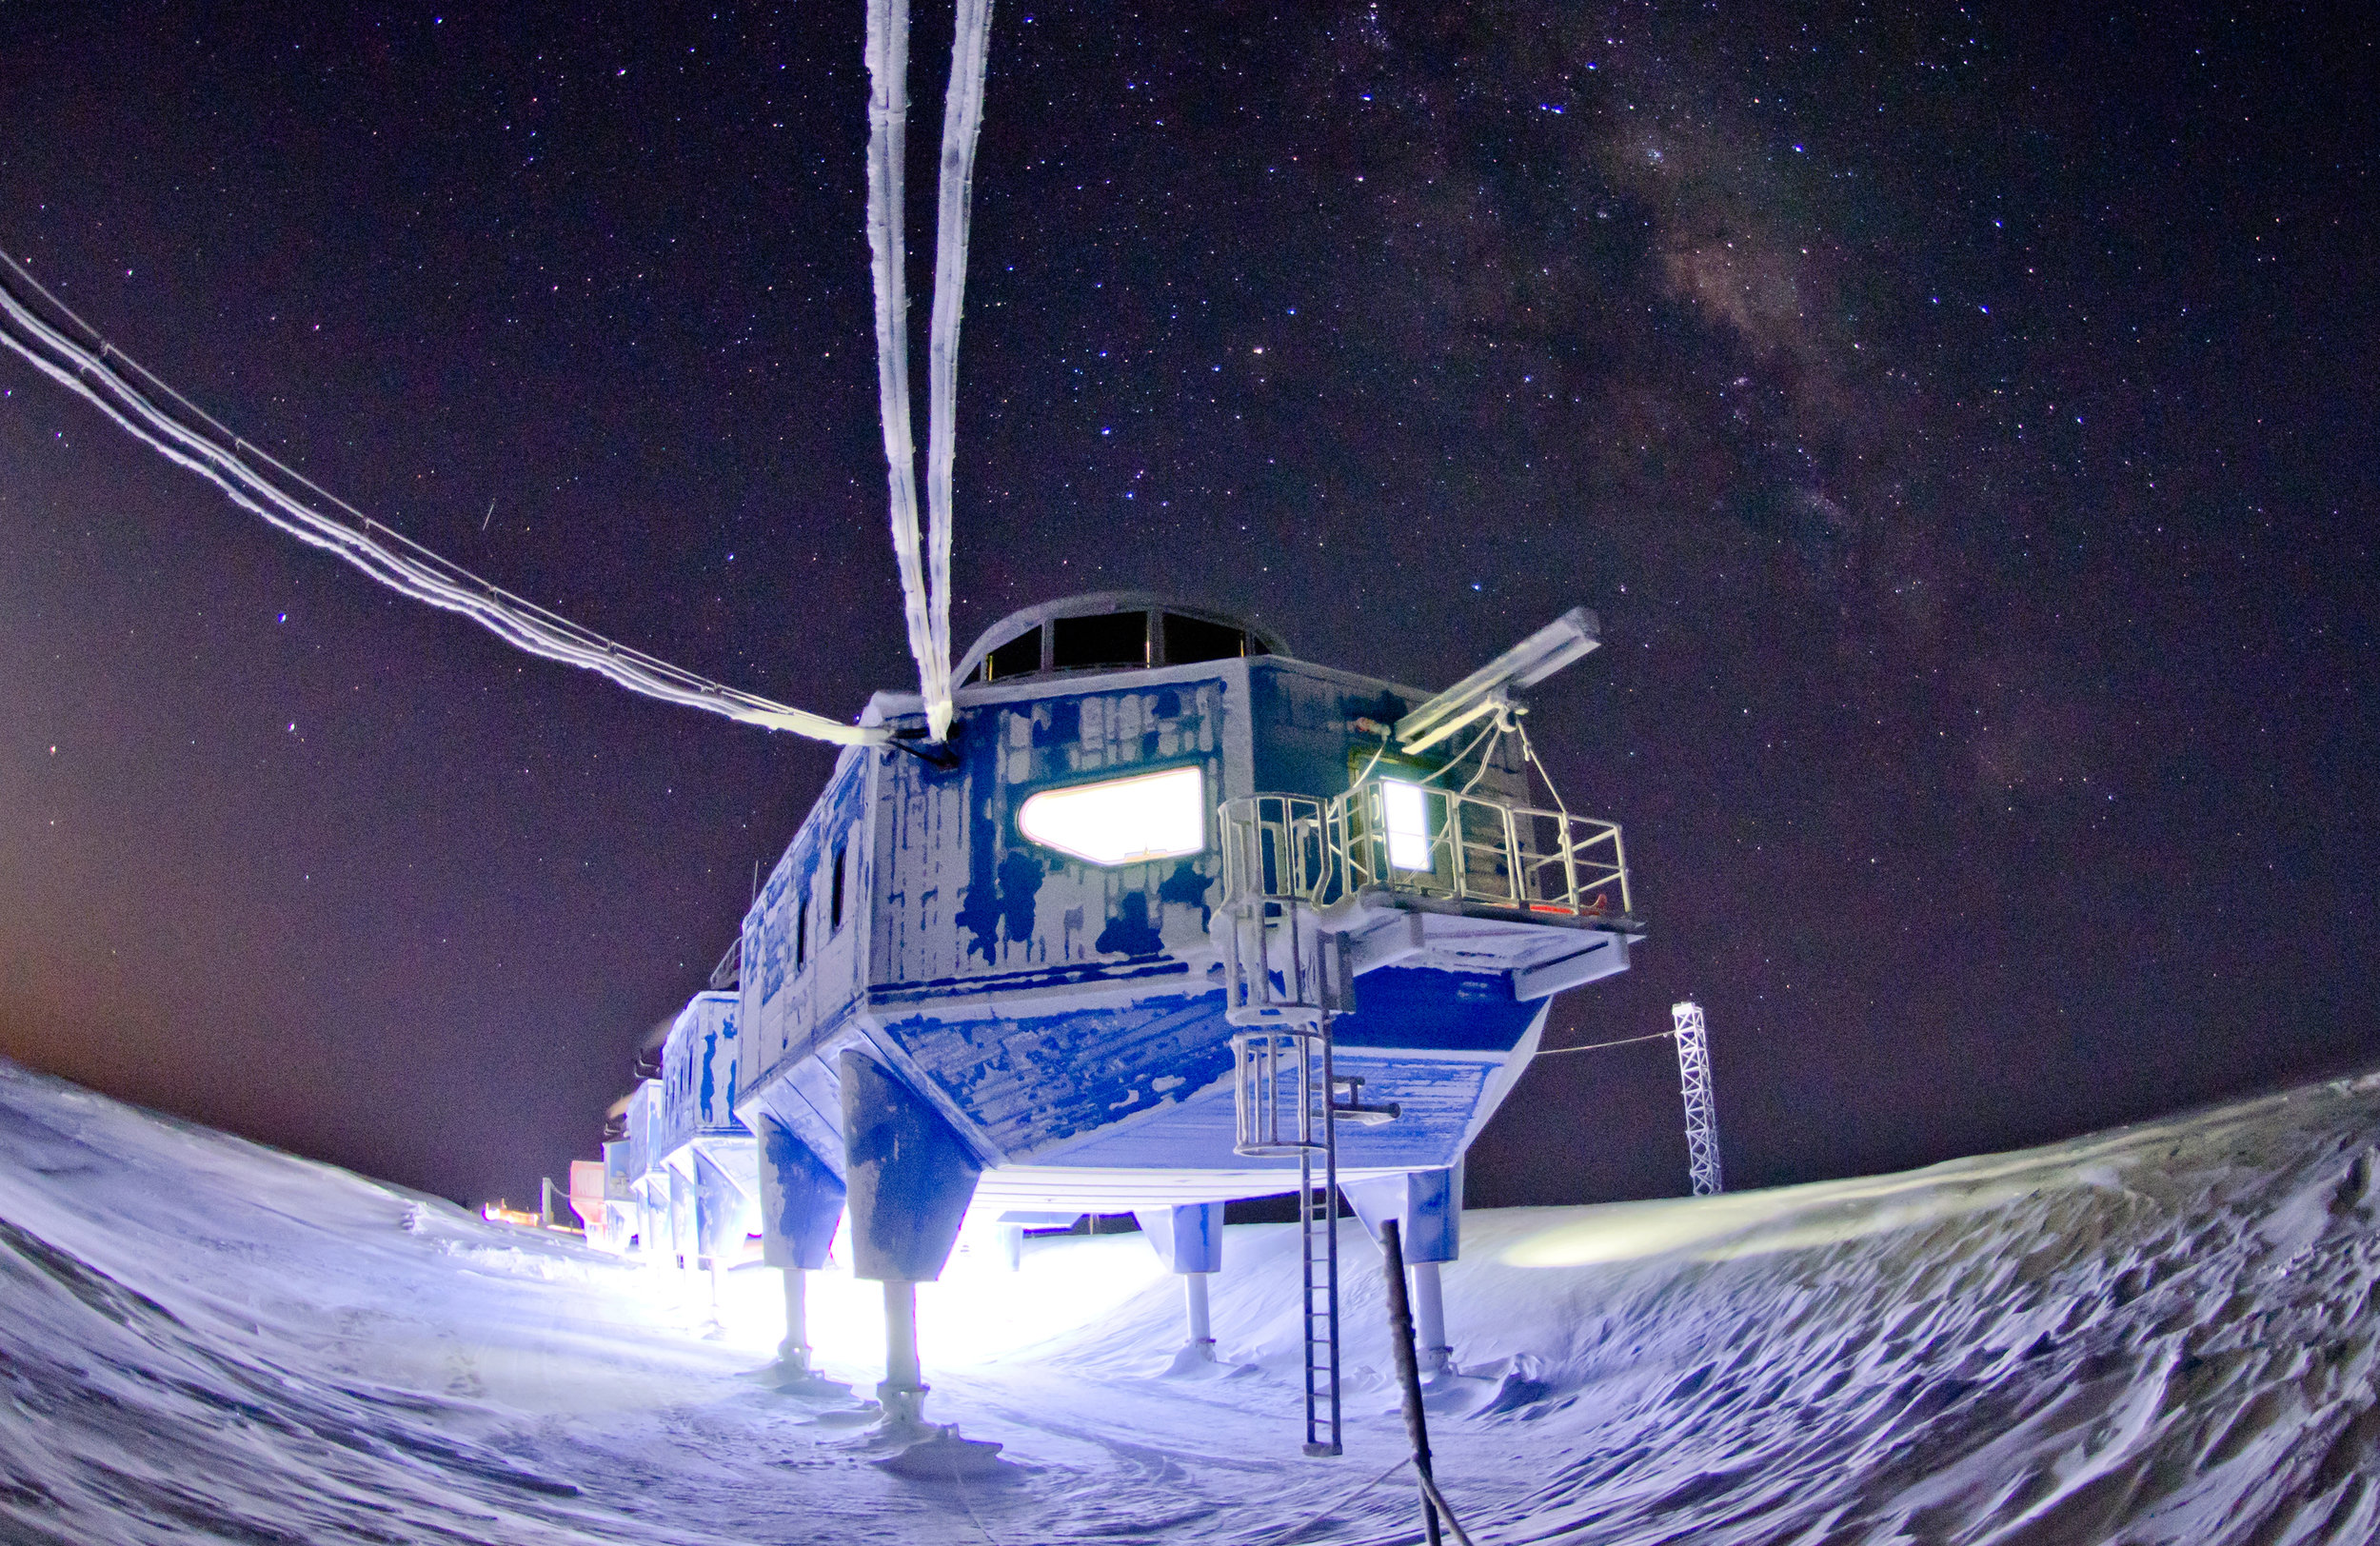 Photo credit: The Halley VI Polar Research Station by   Sam Burrell